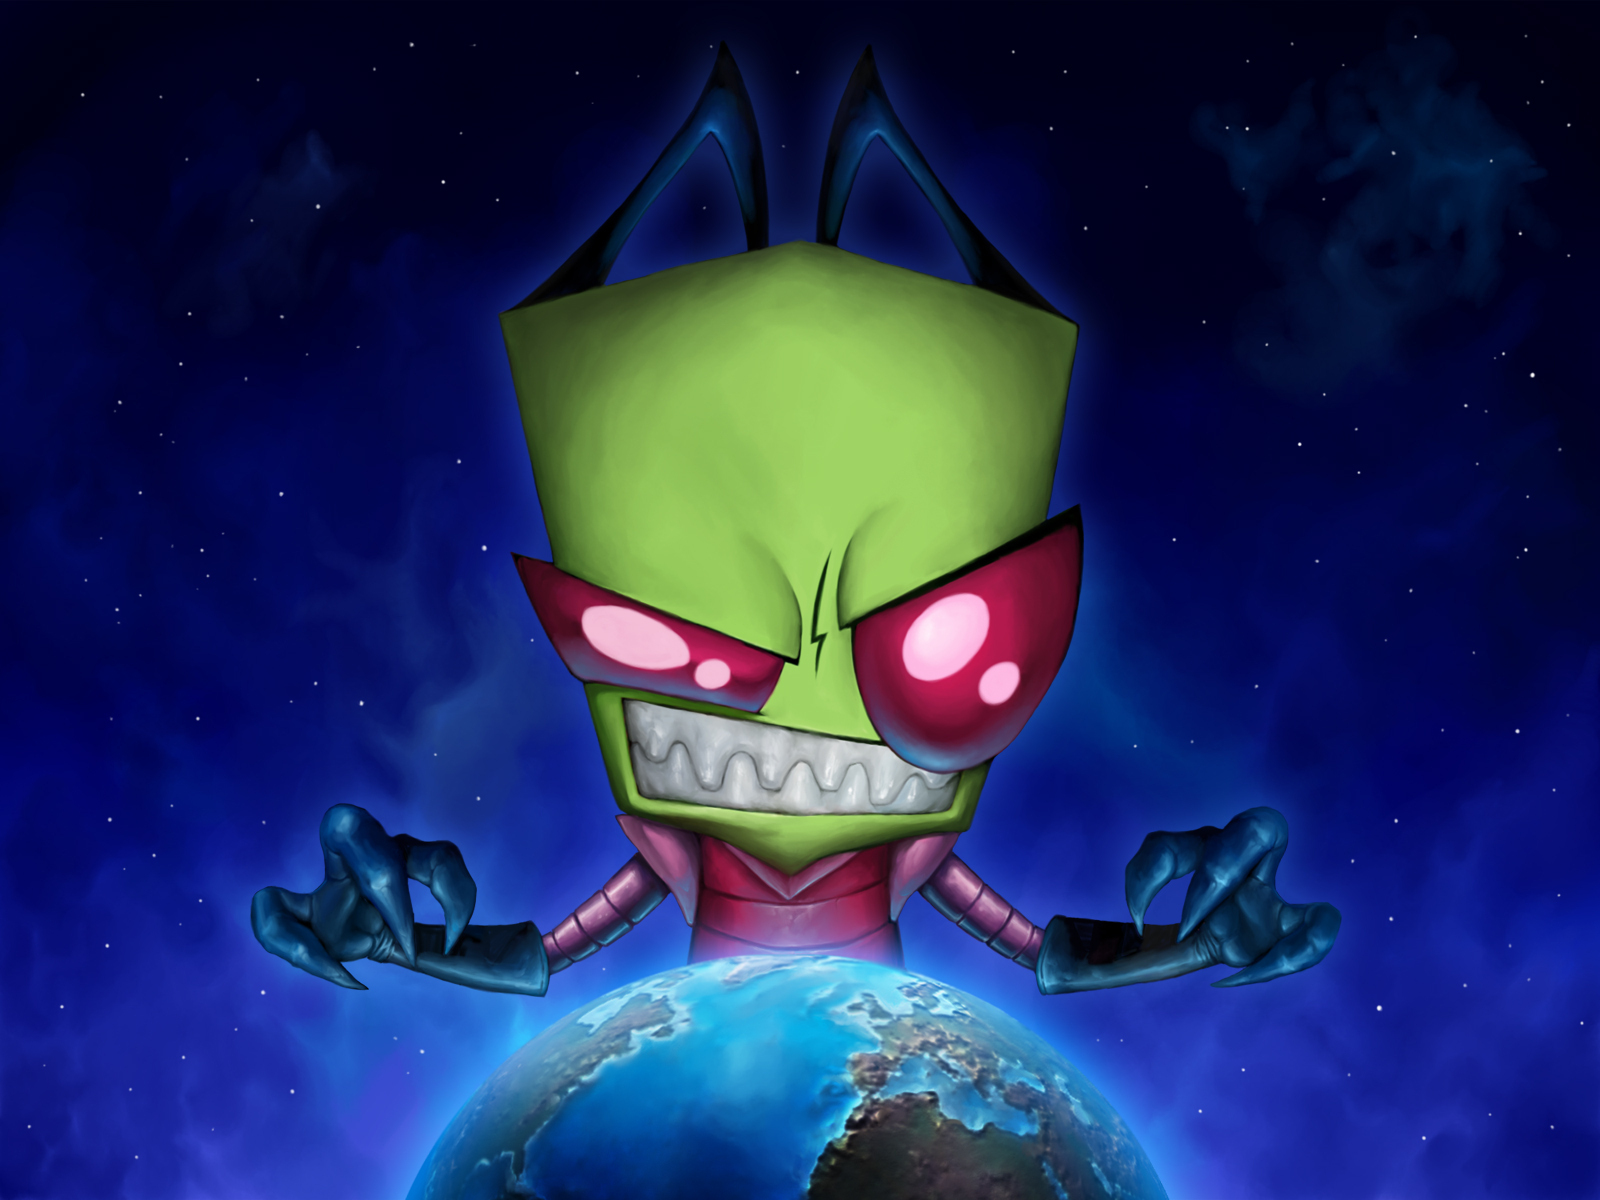 The most AWESOMEST Zim wallpaper ever - Invader Zim Wallpaper (7170499 ...